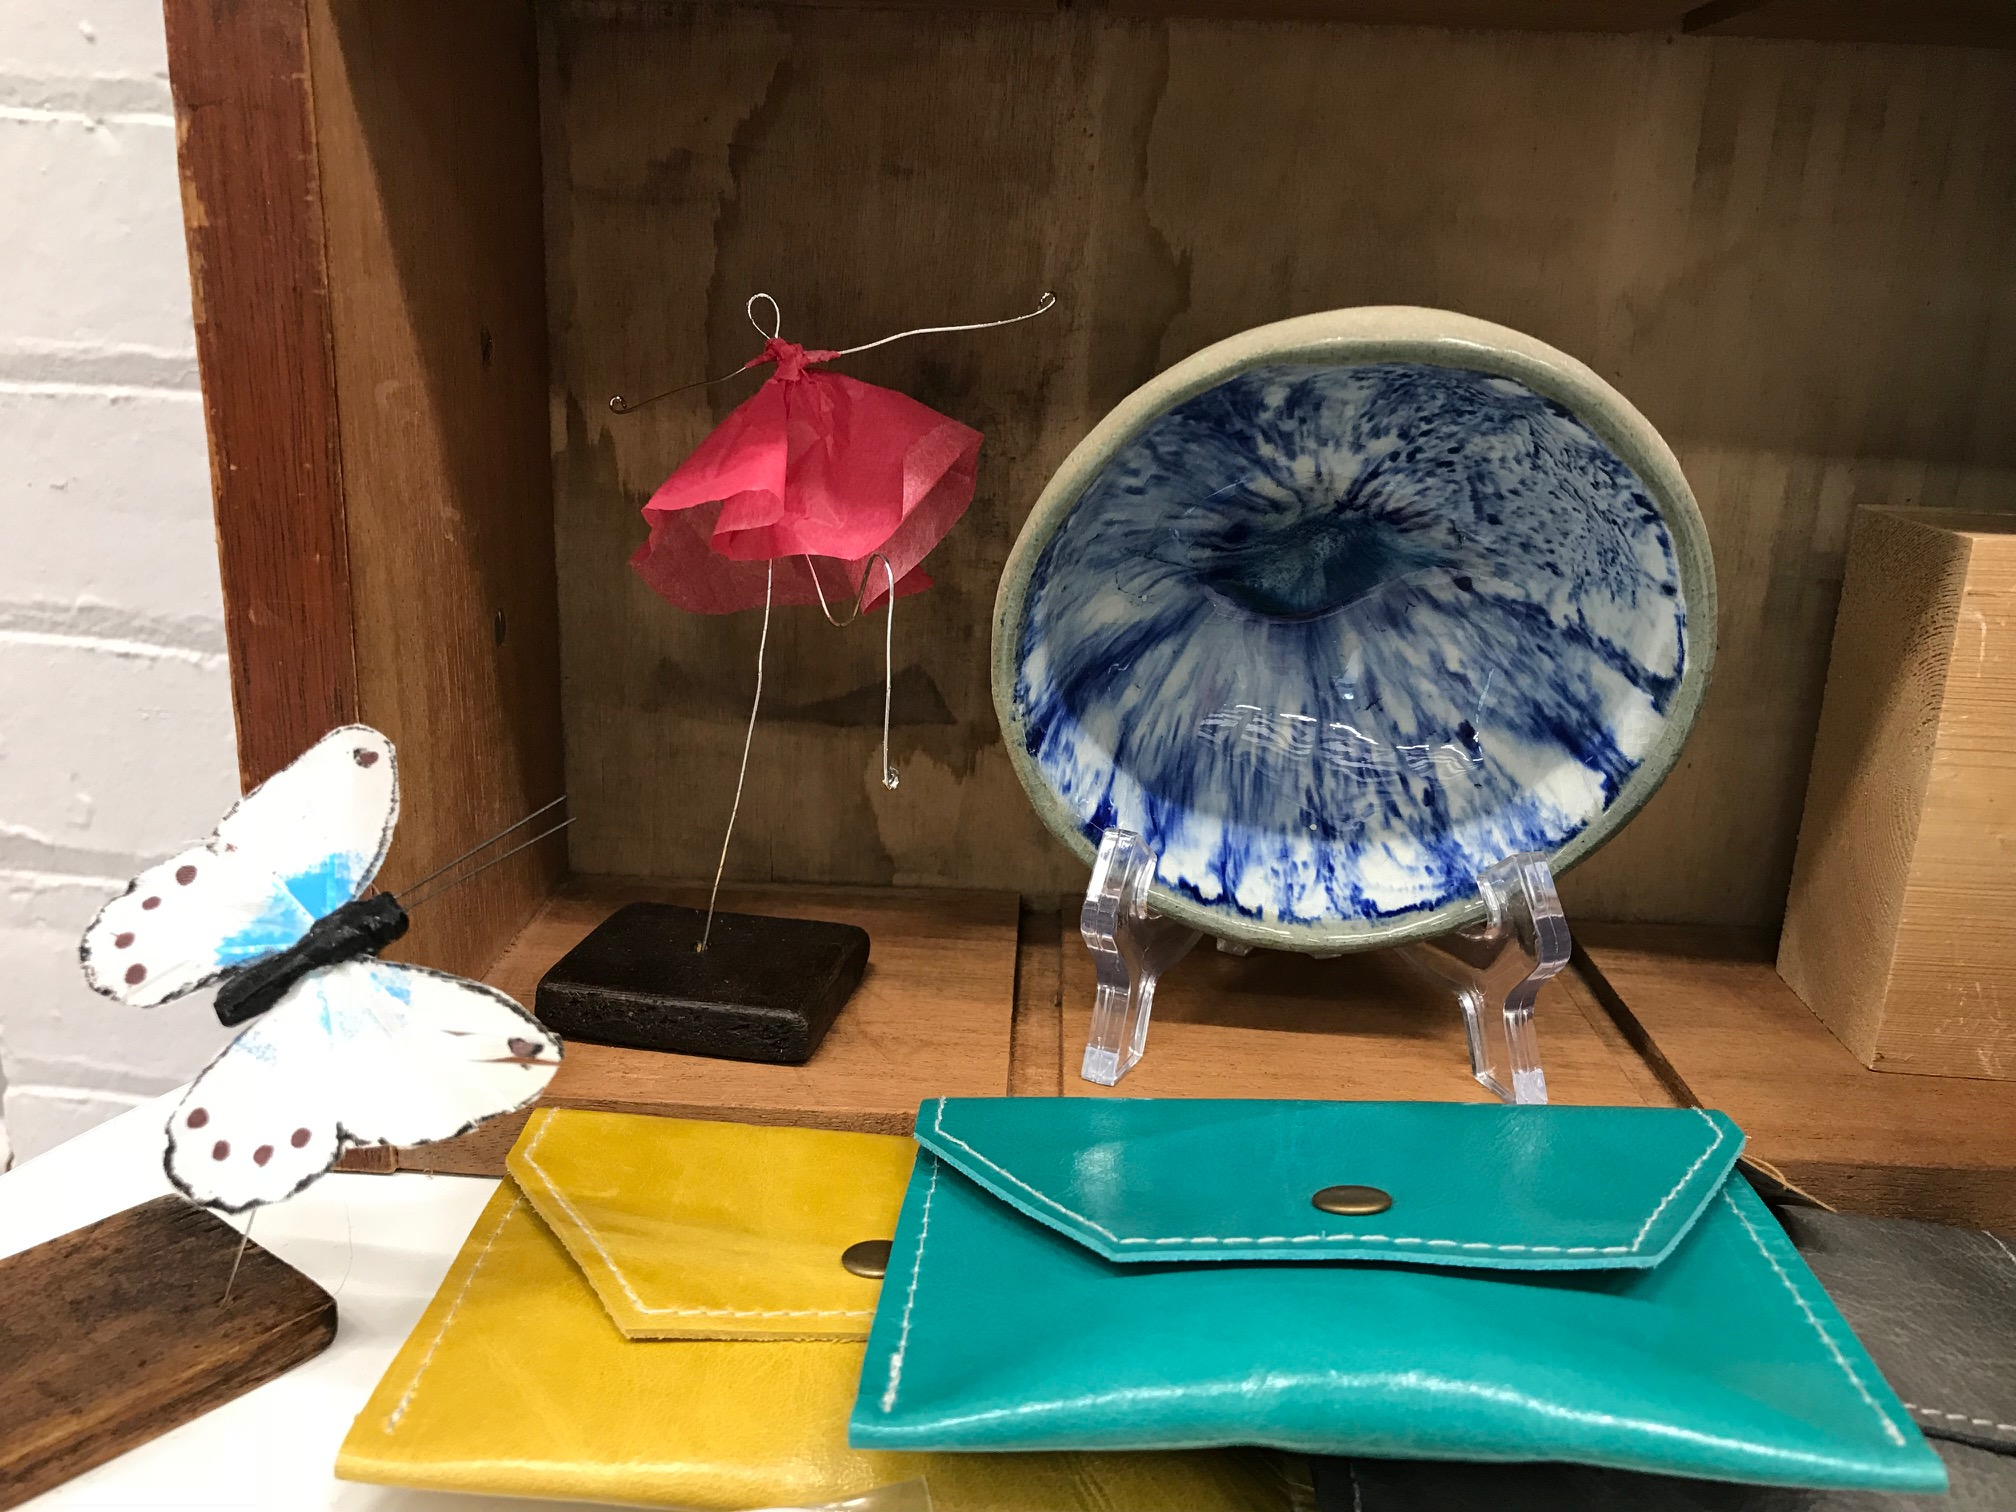 Items by various sellers within the shop.